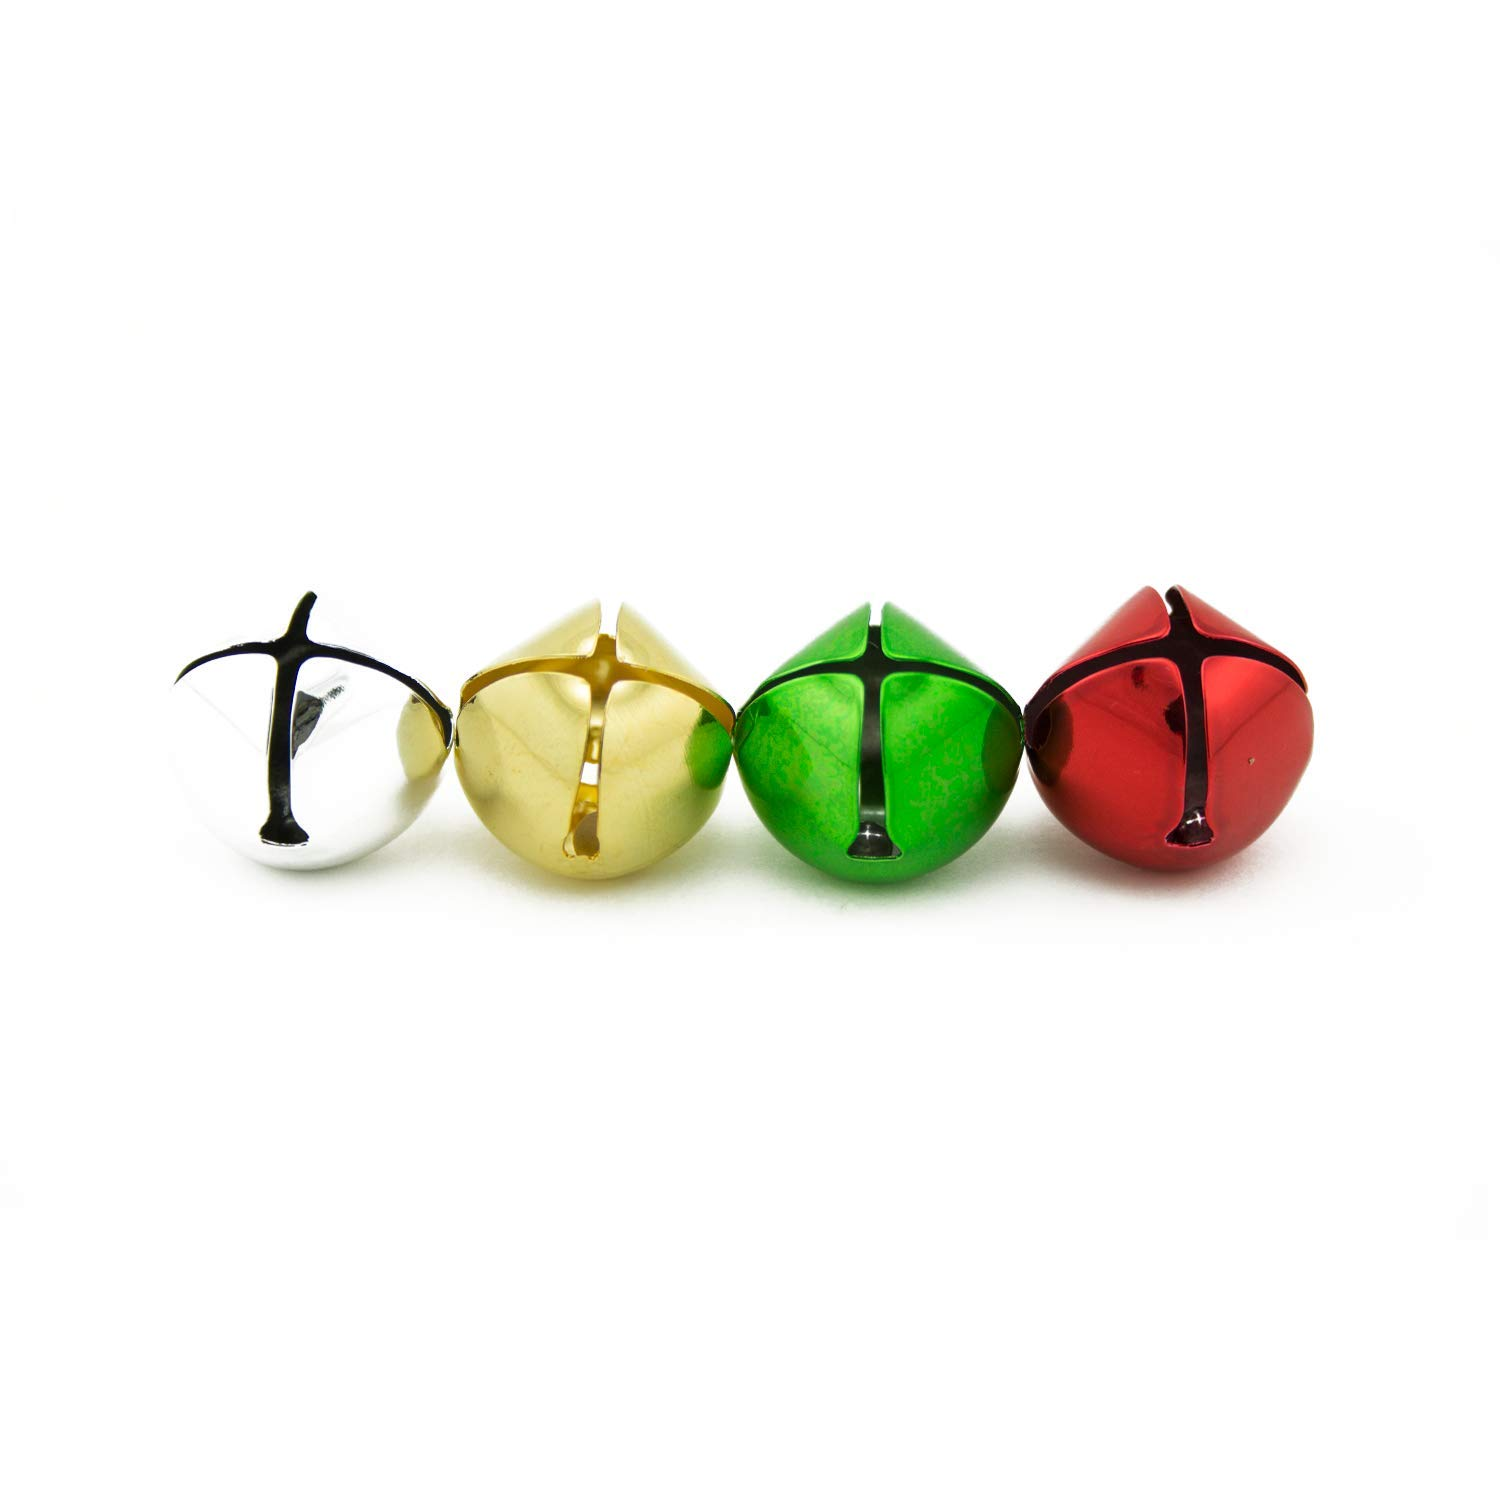 1 inch 25mm Gold Silver Red Green Mix Large Craft Jingle Bells Bulk 144 Pieces by Art Cove (Image #4)